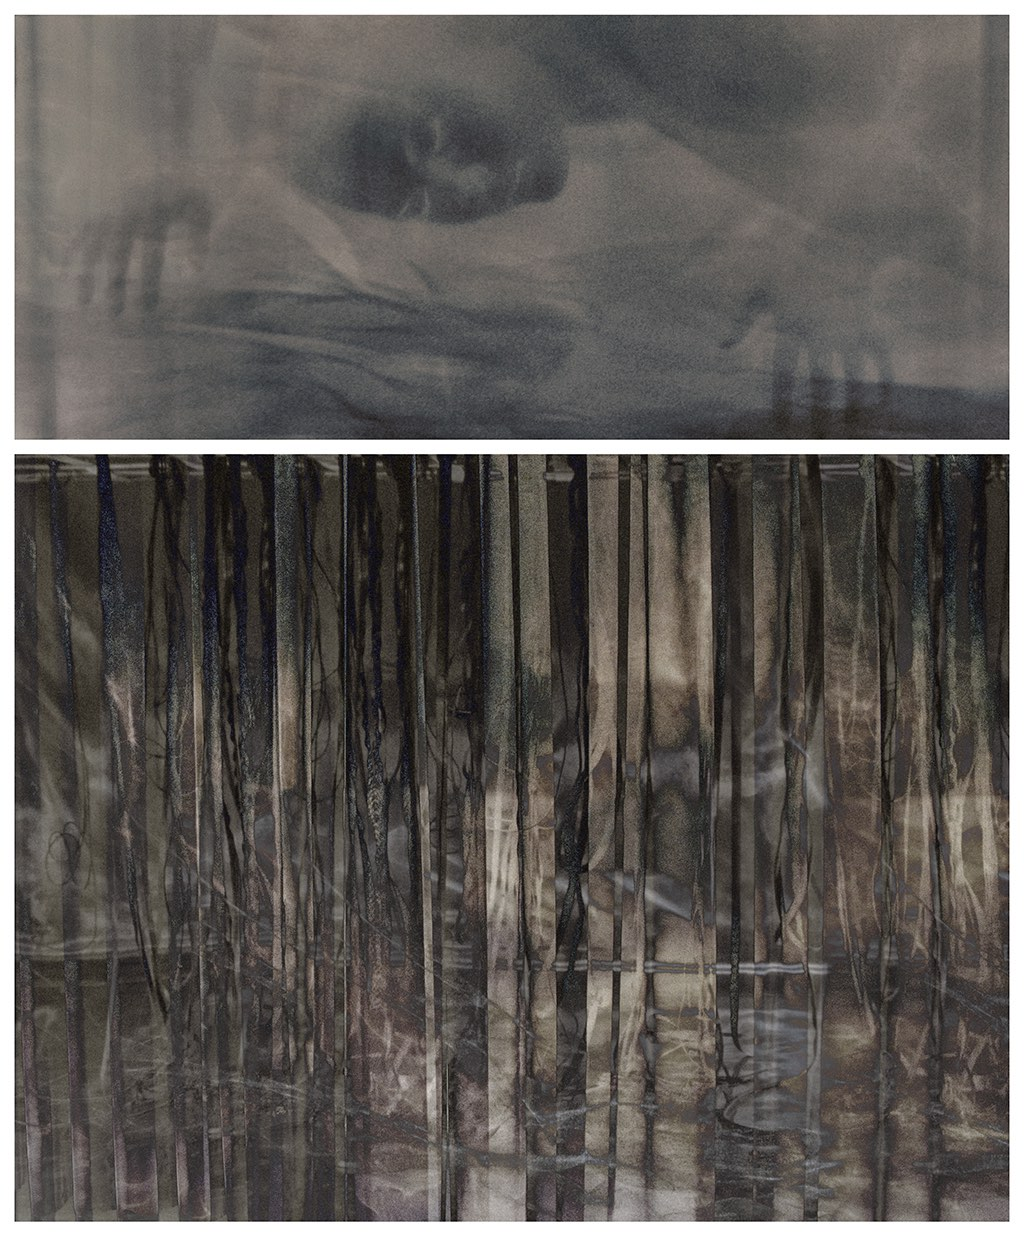 Surface Tension: Root Series, 1.4 , 2016 Chromogenic colour print, diptych, 21 x 48 inches, 37 x 48 inches